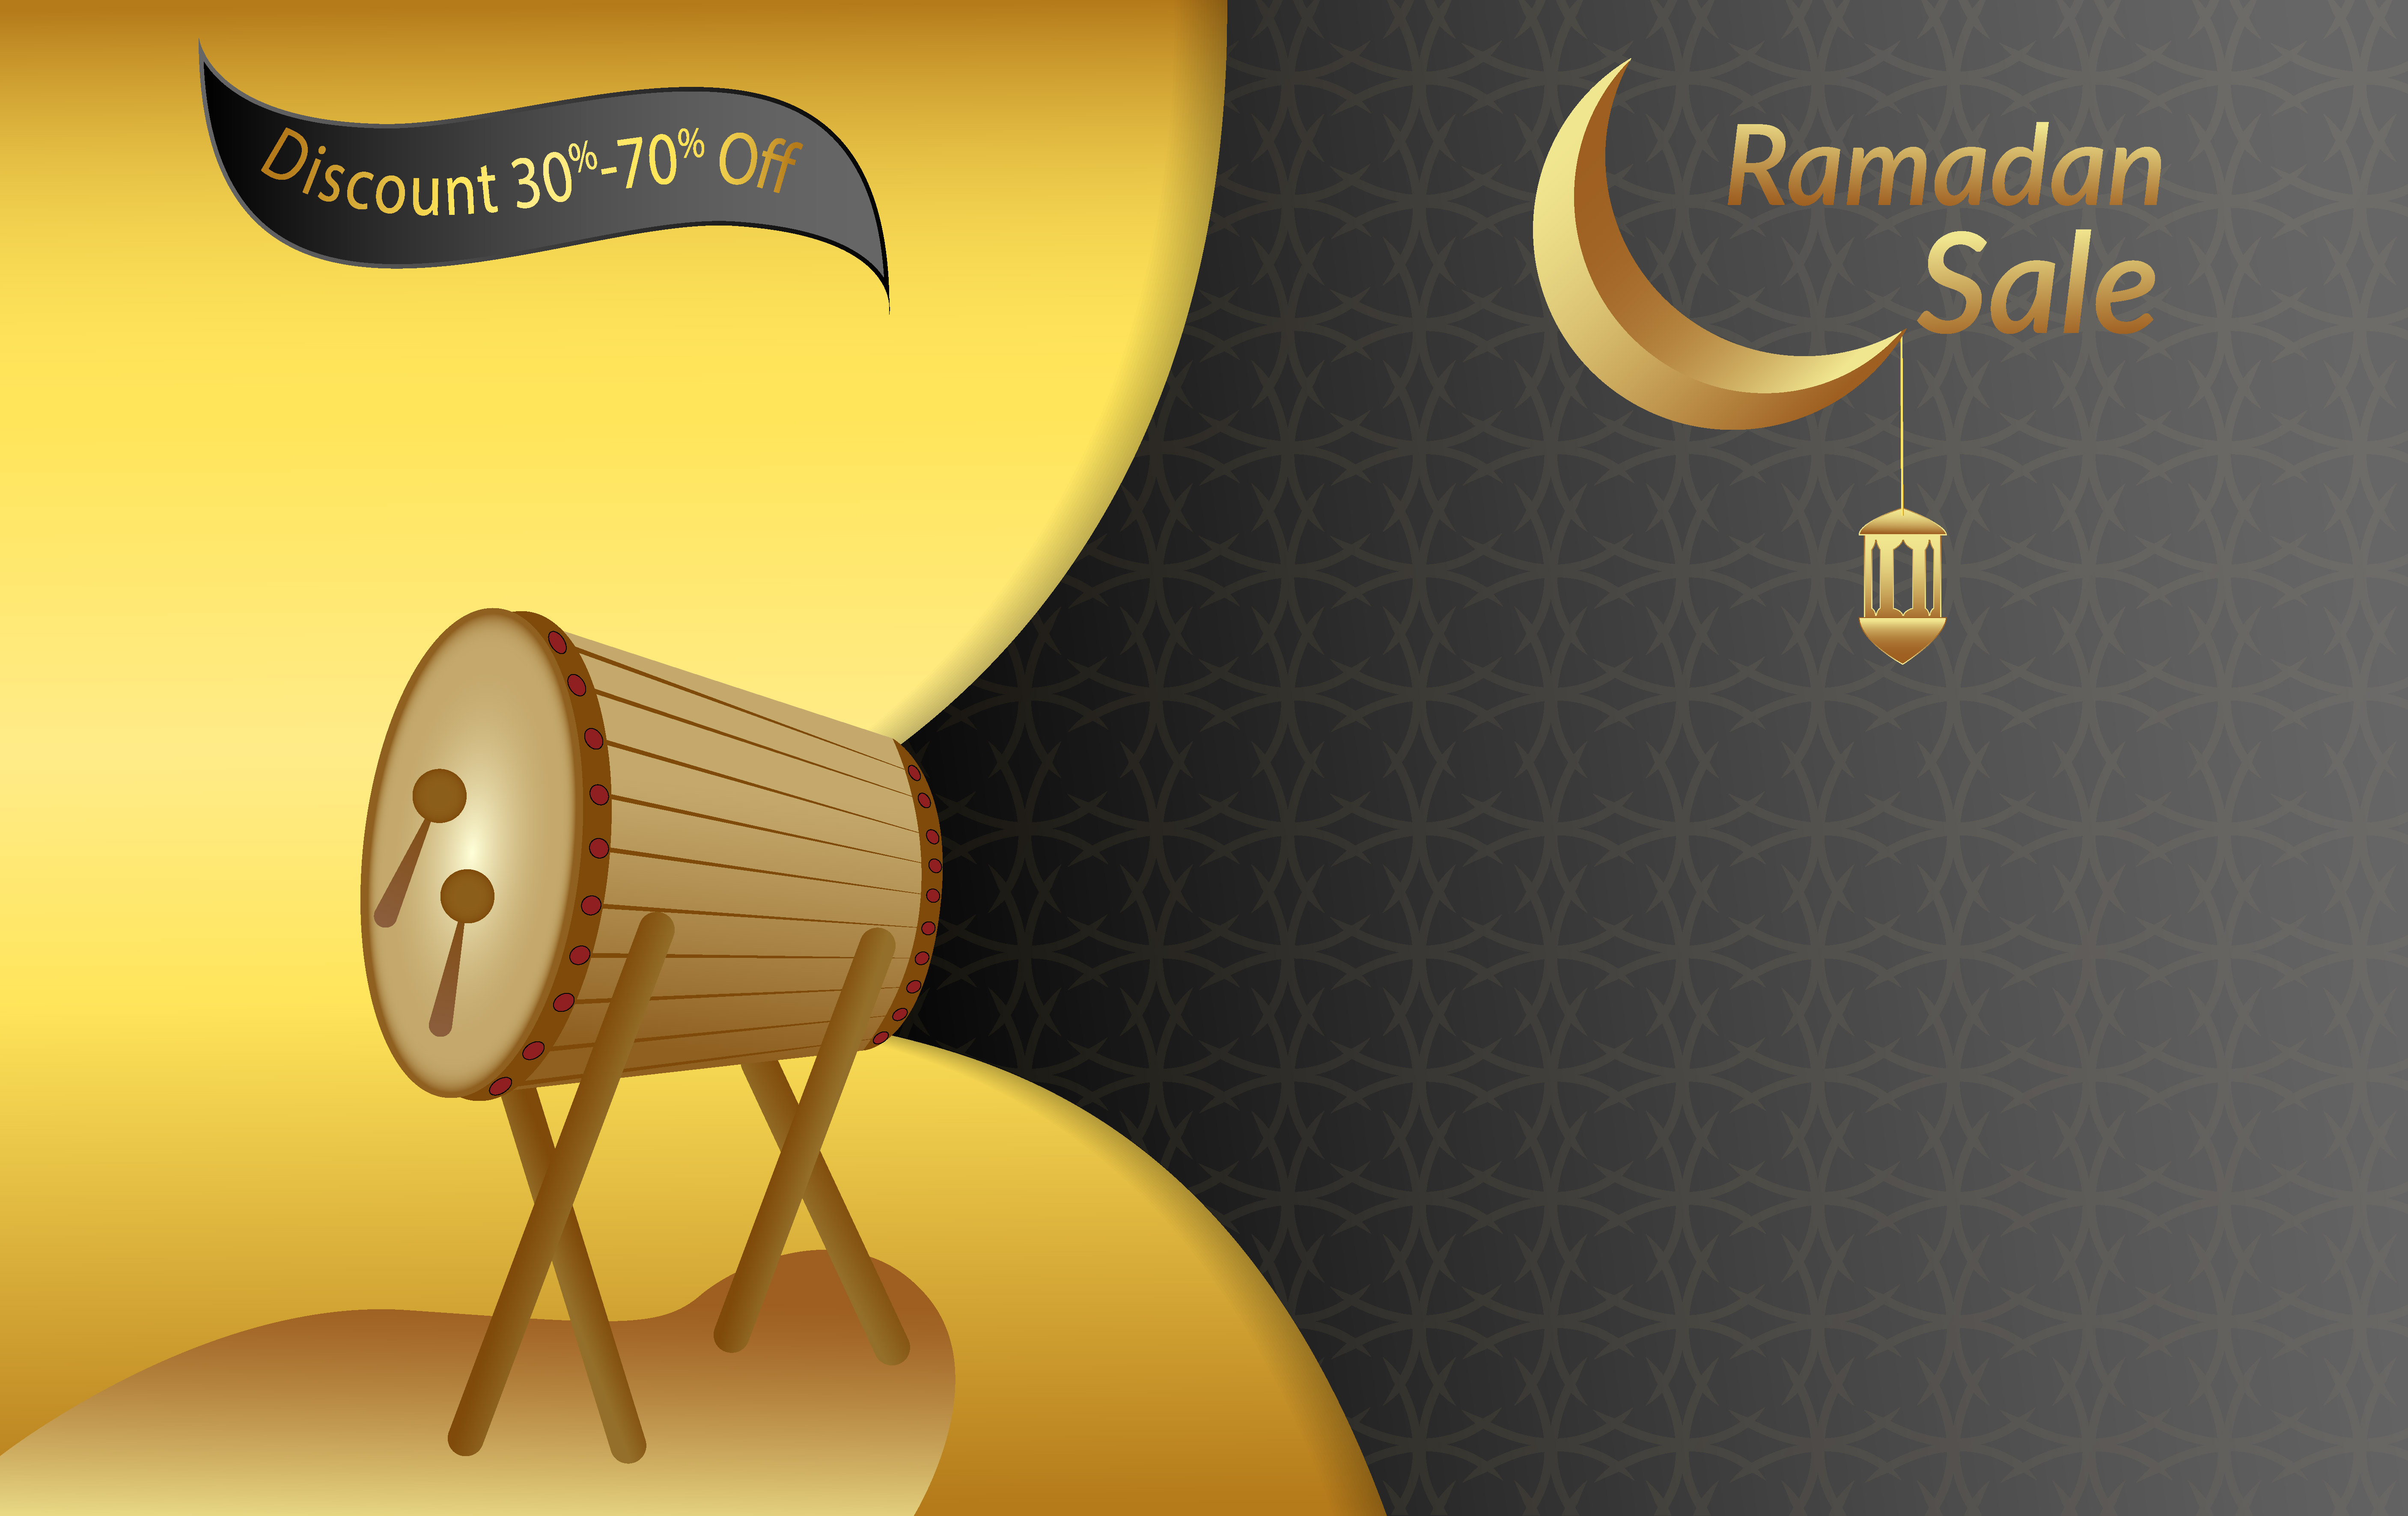 Download Free Ramadan Graphic By Usmanfirdaus446 Creative Fabrica for Cricut Explore, Silhouette and other cutting machines.